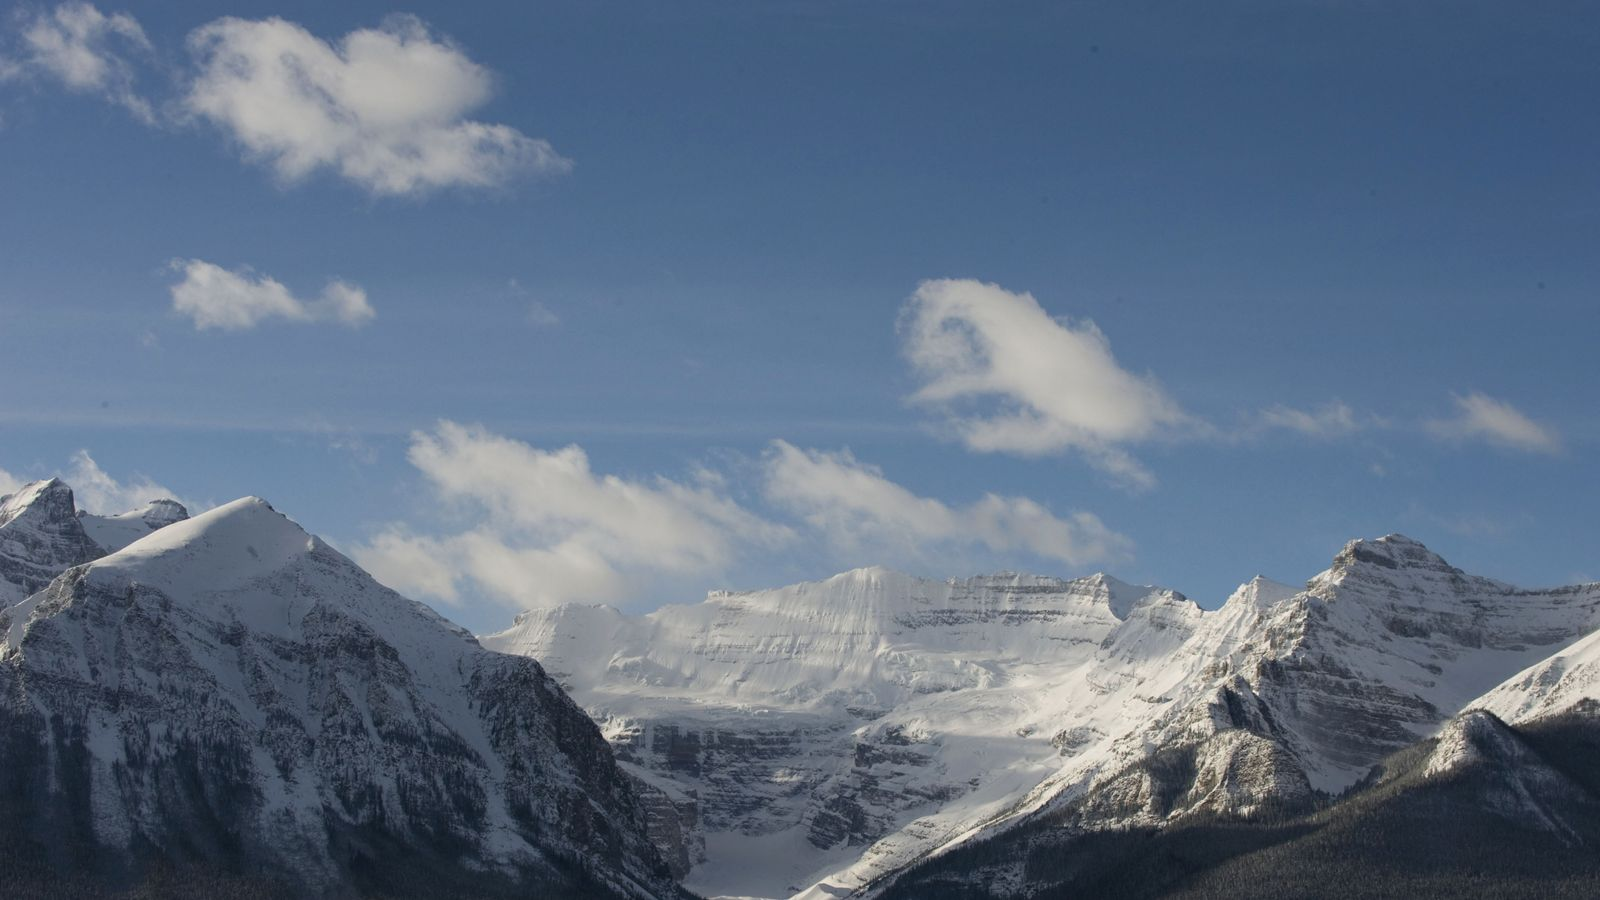 Well Known Mountain Climbers Feared Dead After Canada